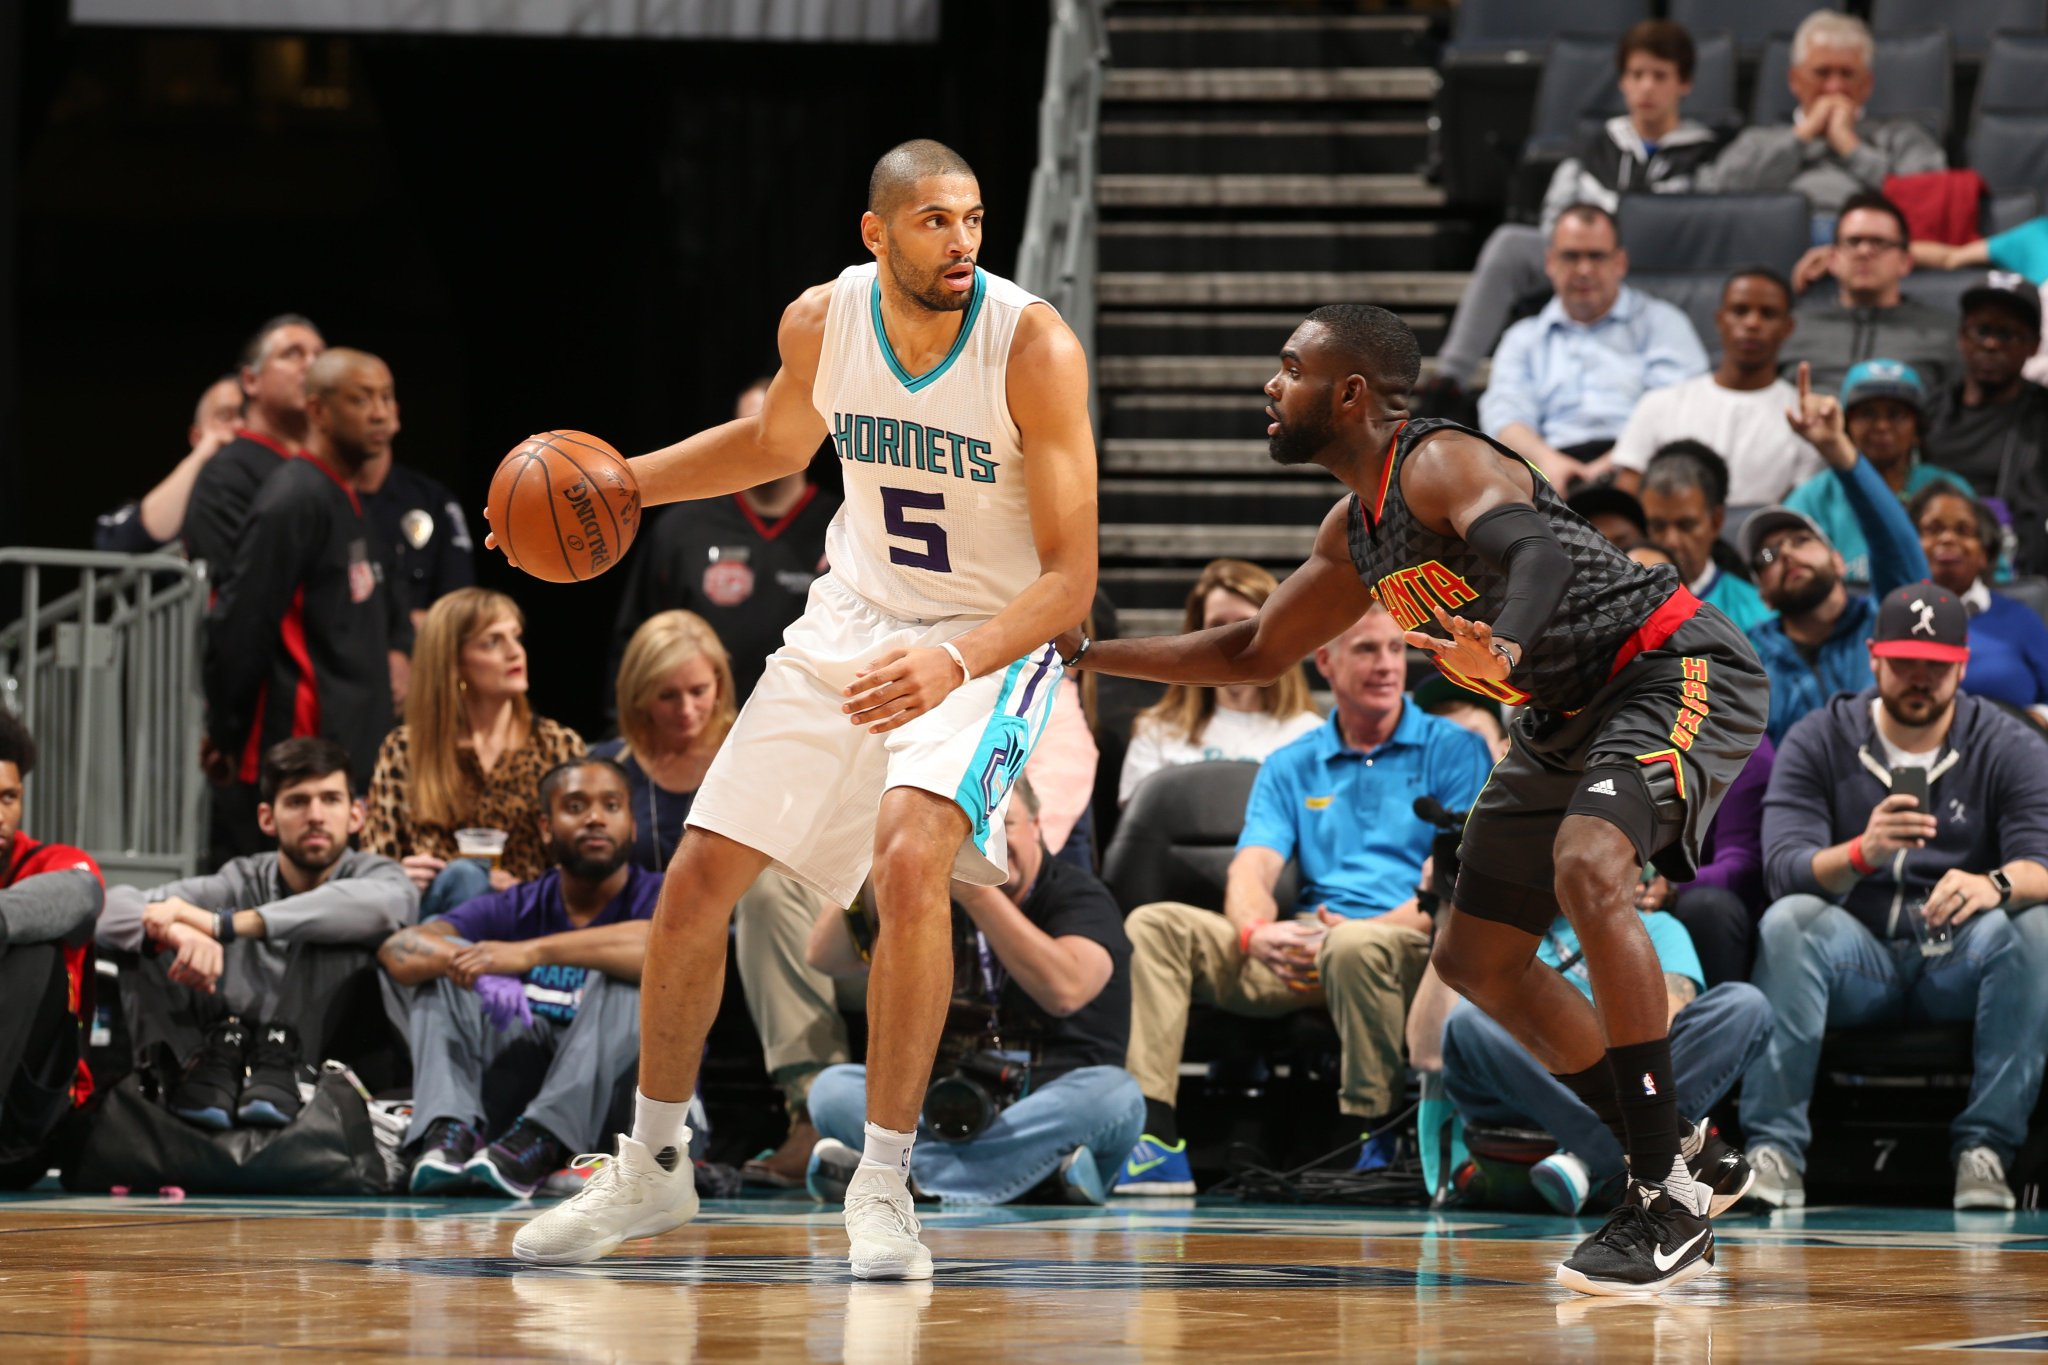 Charlotte takes this one at home. Kemba and Nic combine for 32.  FINAL - @hornets: 105 @ATLHawks: 90 https://t.co/Eivy4AU7KM